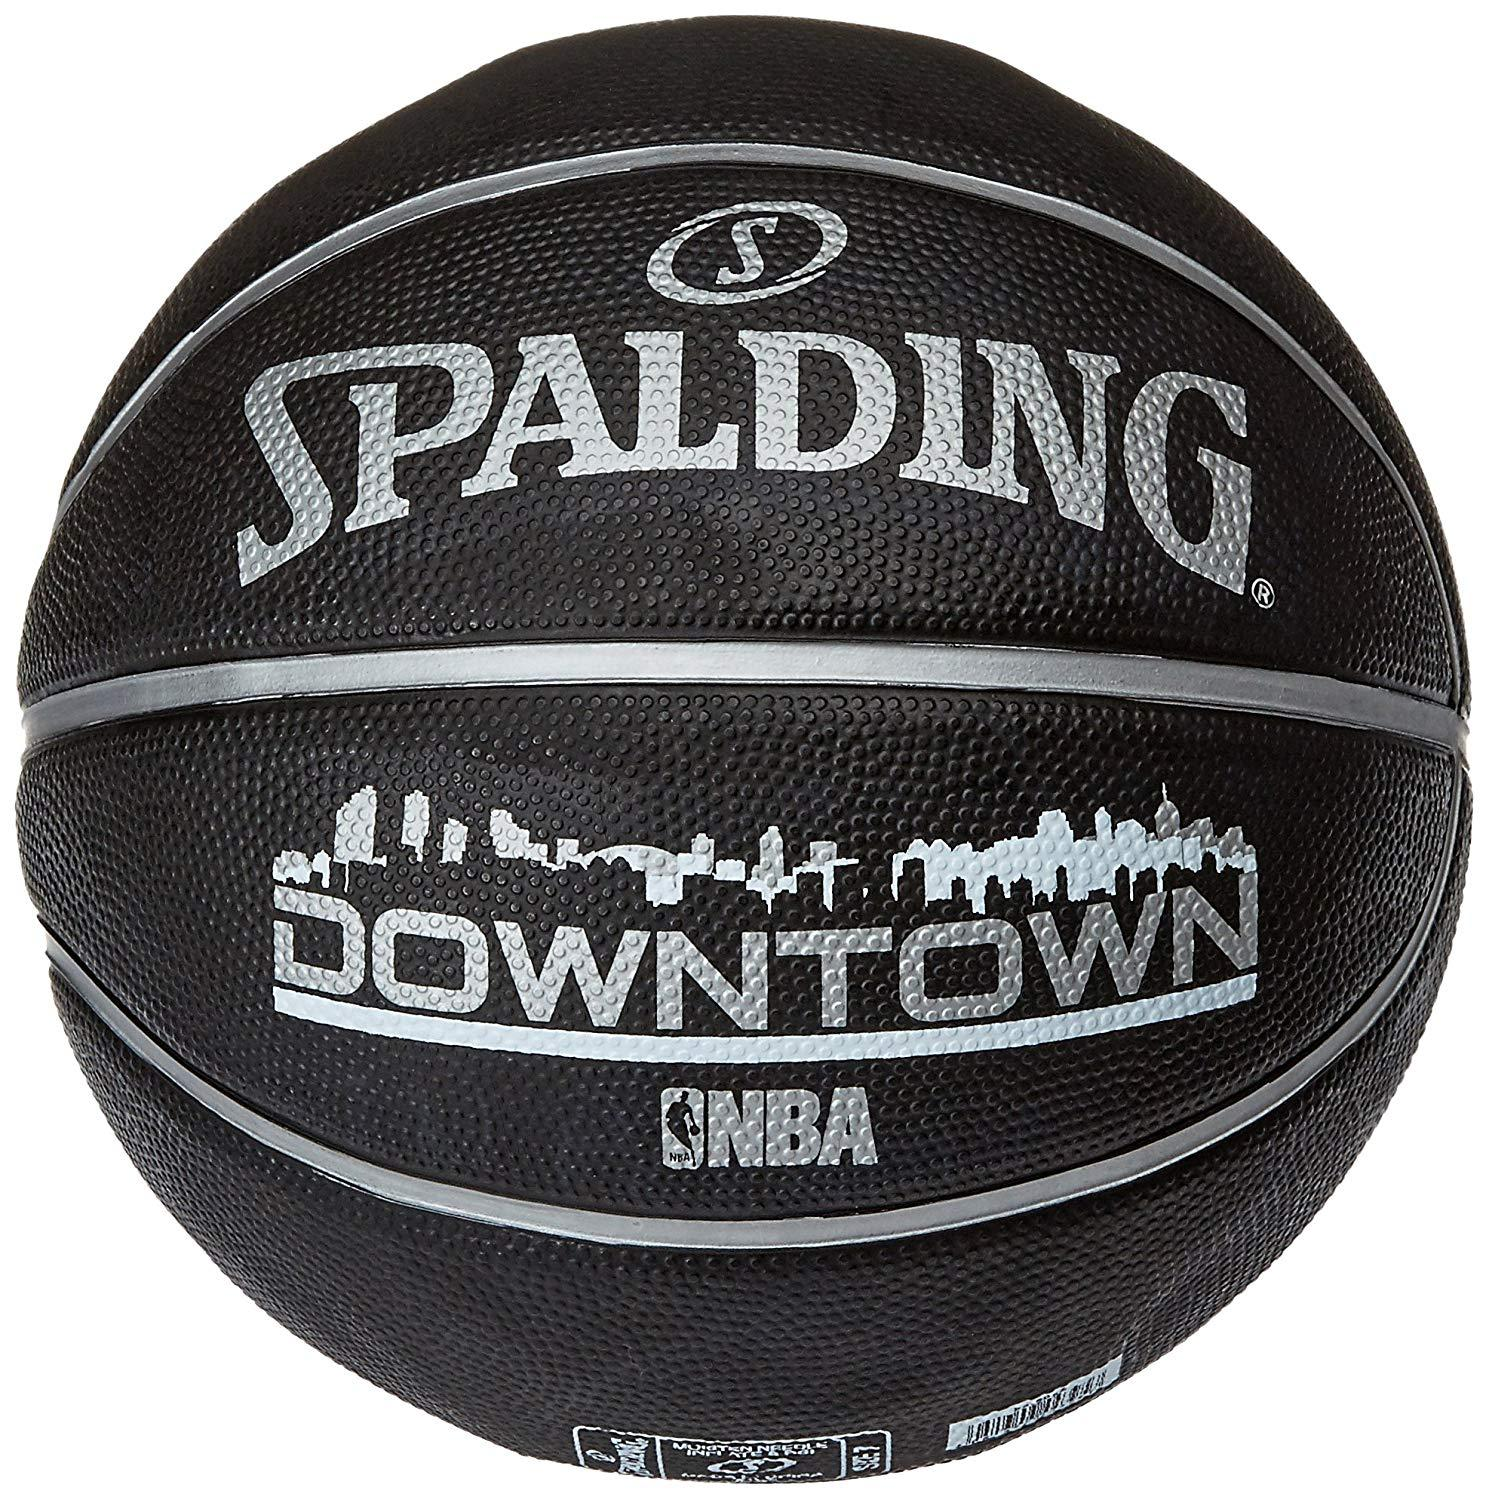 Spalding Basketball Philippines - Spalding Basketball Game for sale ... a13285e568